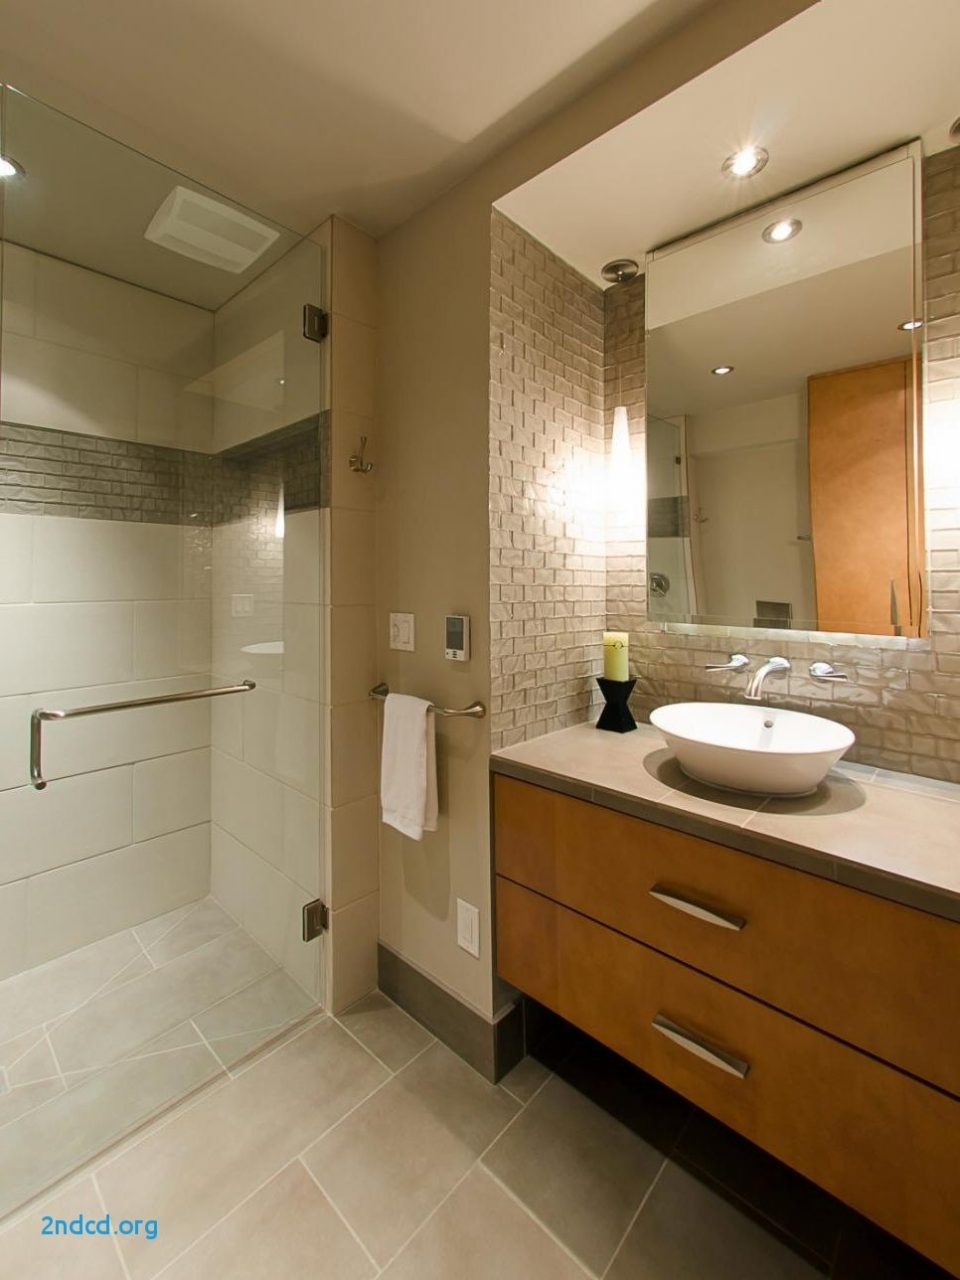 Luxury Bathroom Ventilation Ideas 2ndcd 2ndcd